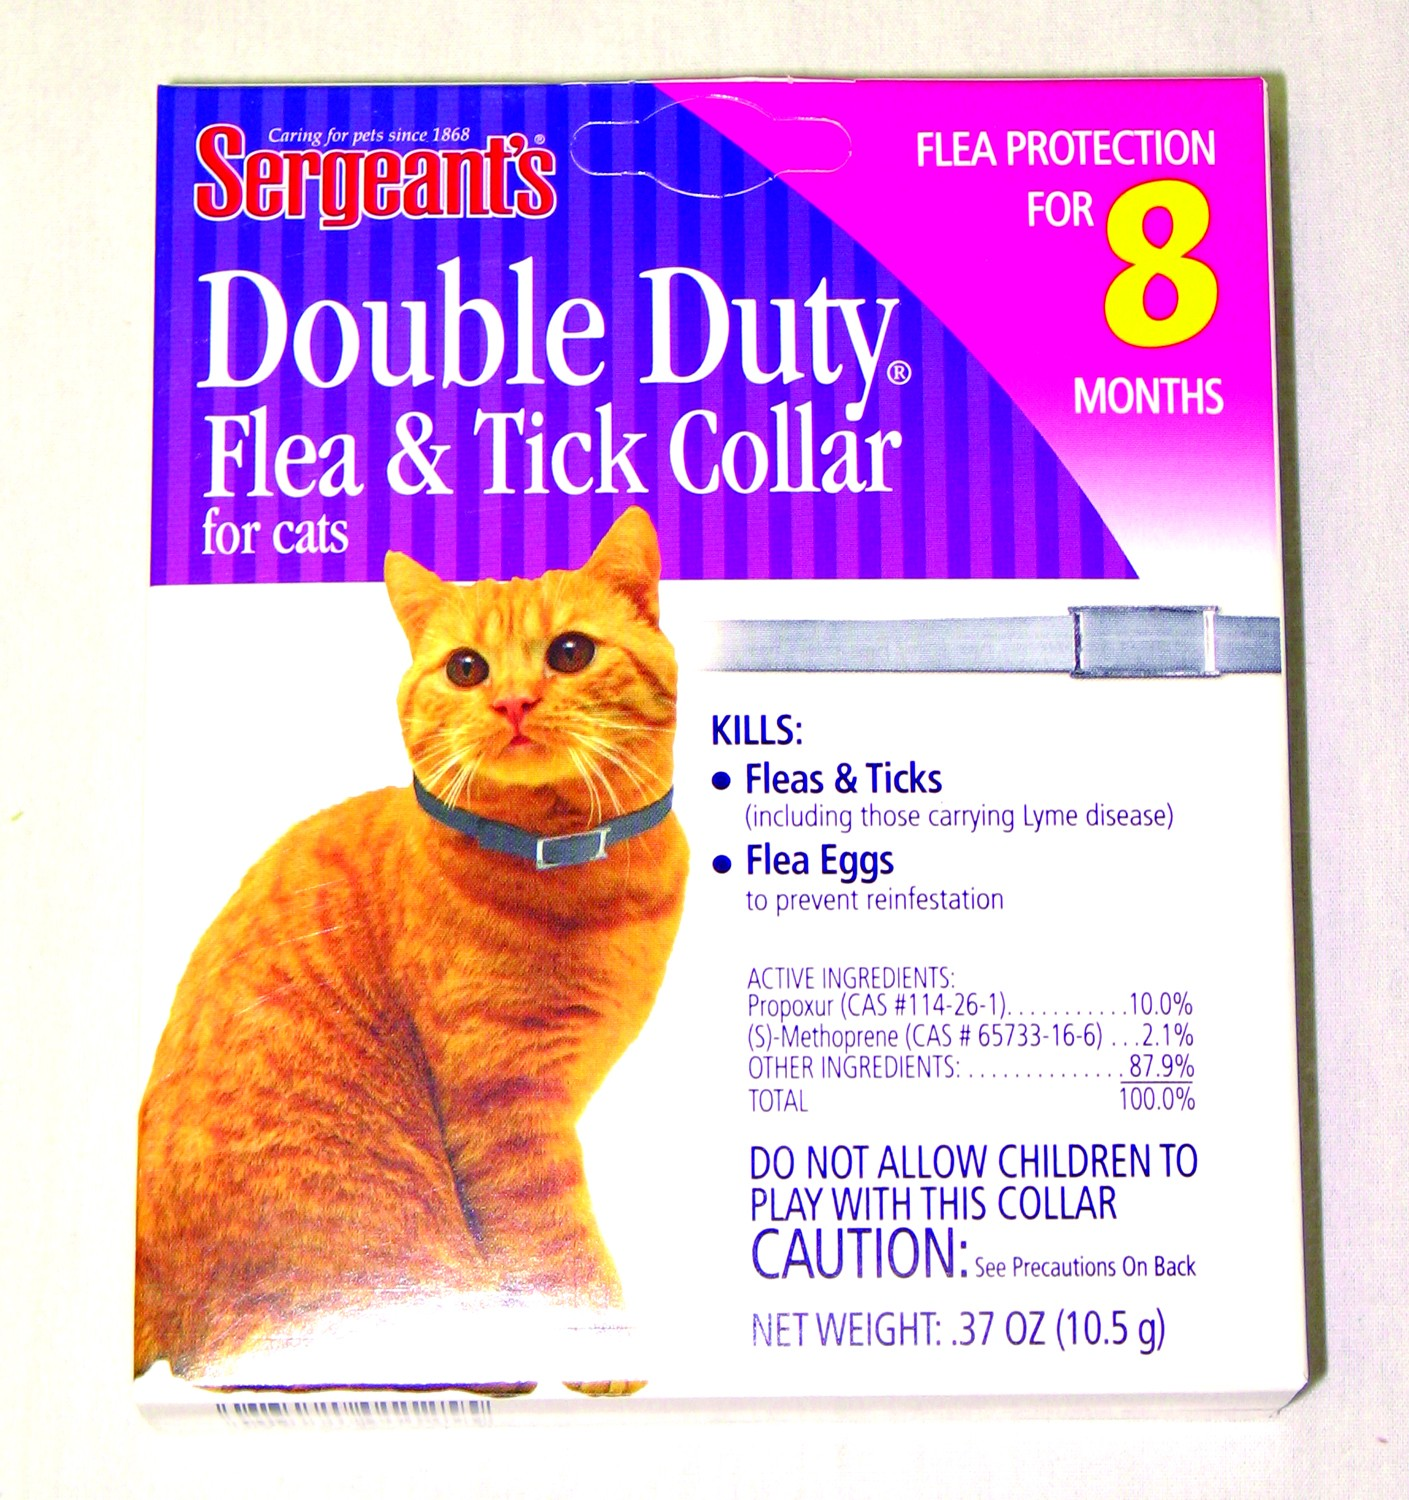 DOUBLE DUTY FLEA & TICK COLLAR FOR CATS